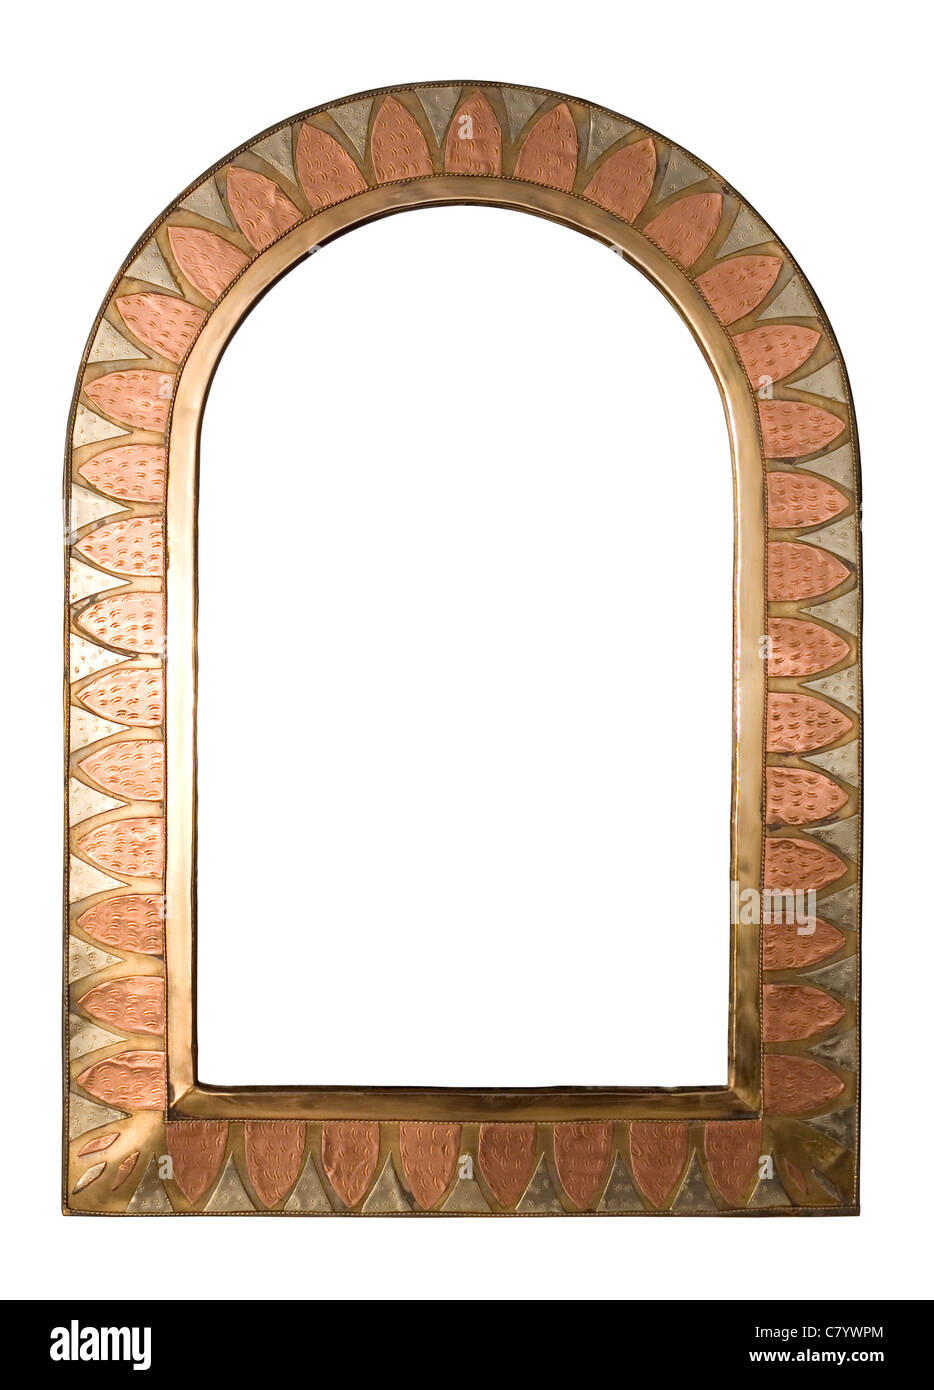 A brass and copper arched picture frame, isolated on white with ...